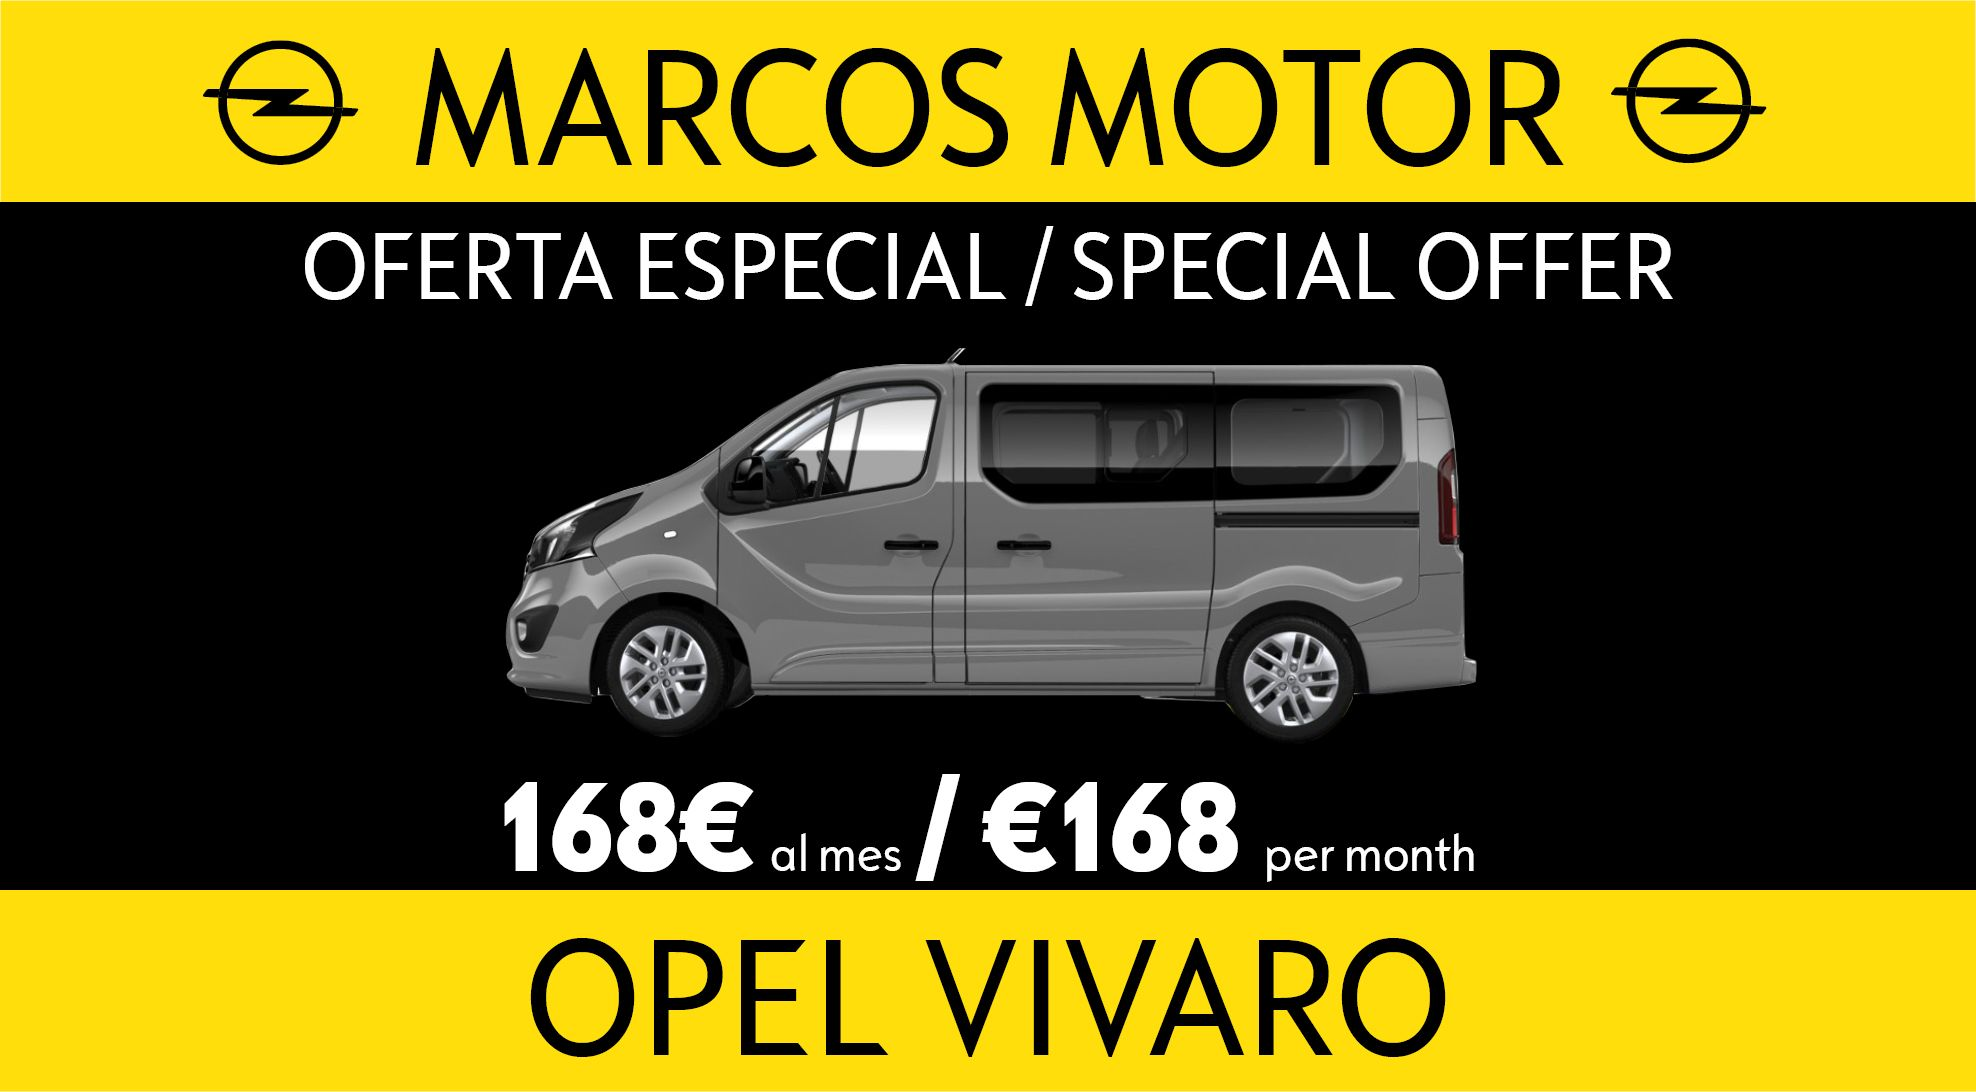 Opel Vivaro Offer €168 per month